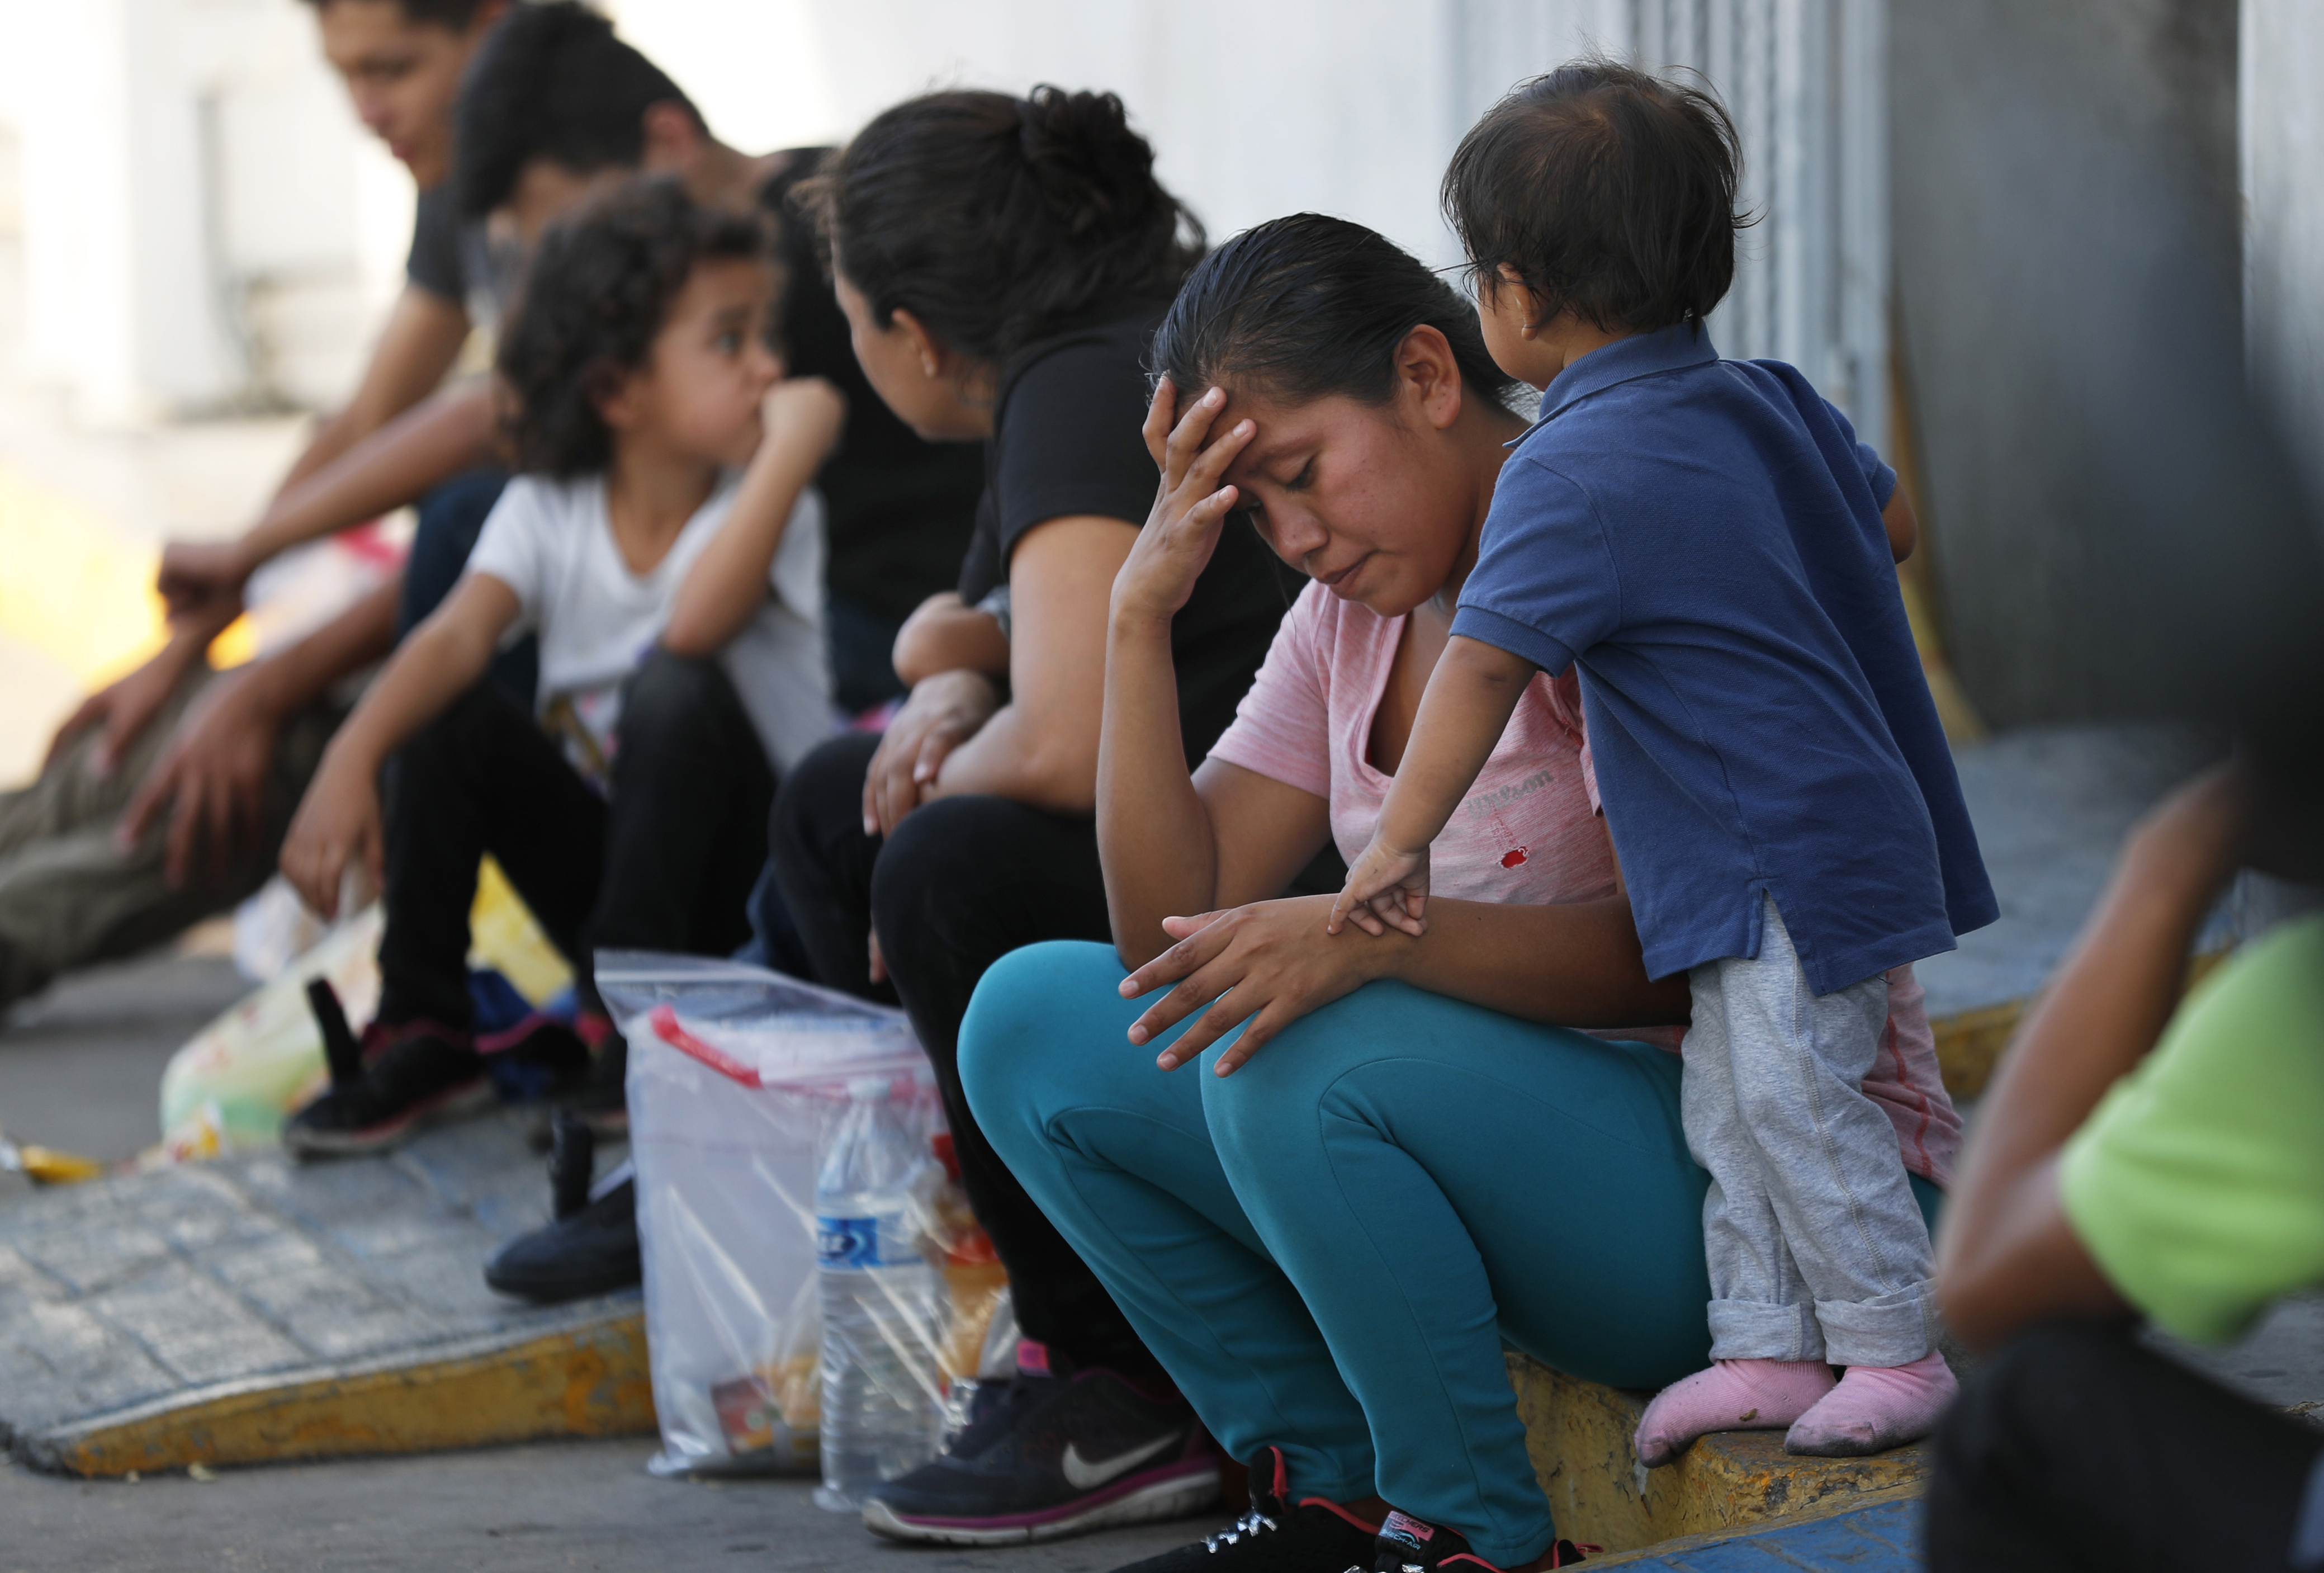 House passes Slotkin bill to provide basic necessities to detained migrants